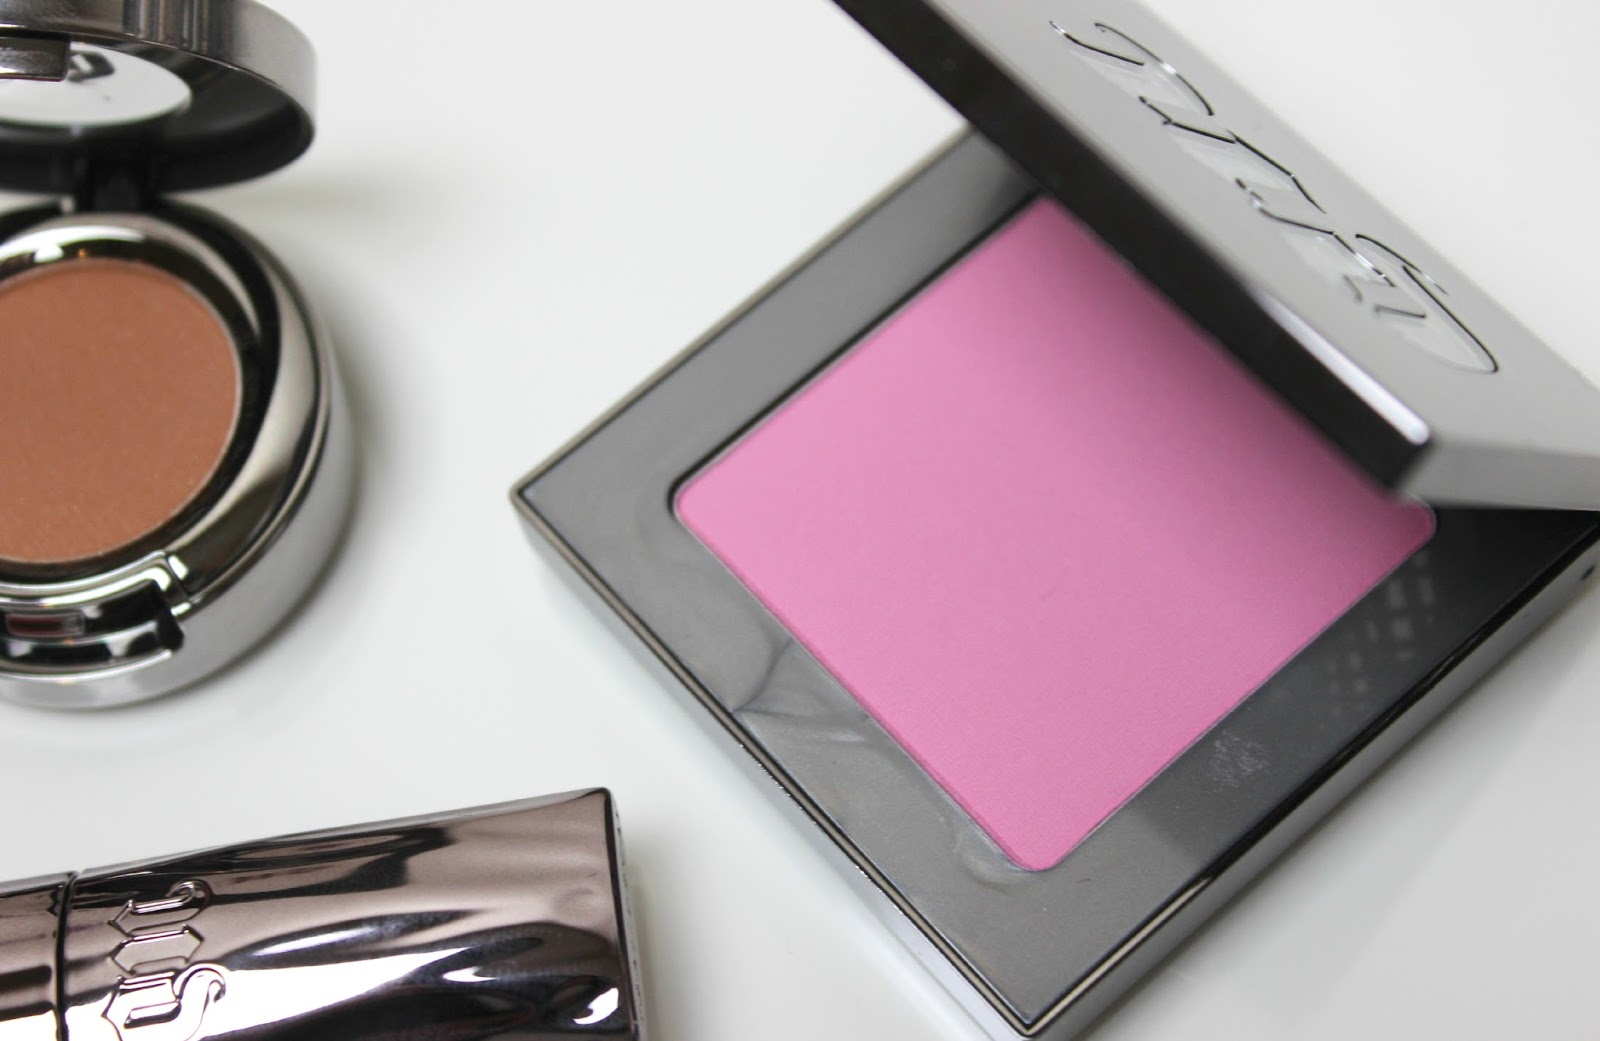 A picture of Urban Decay Afterglow 8-Hour Powder Blush in Obsessed